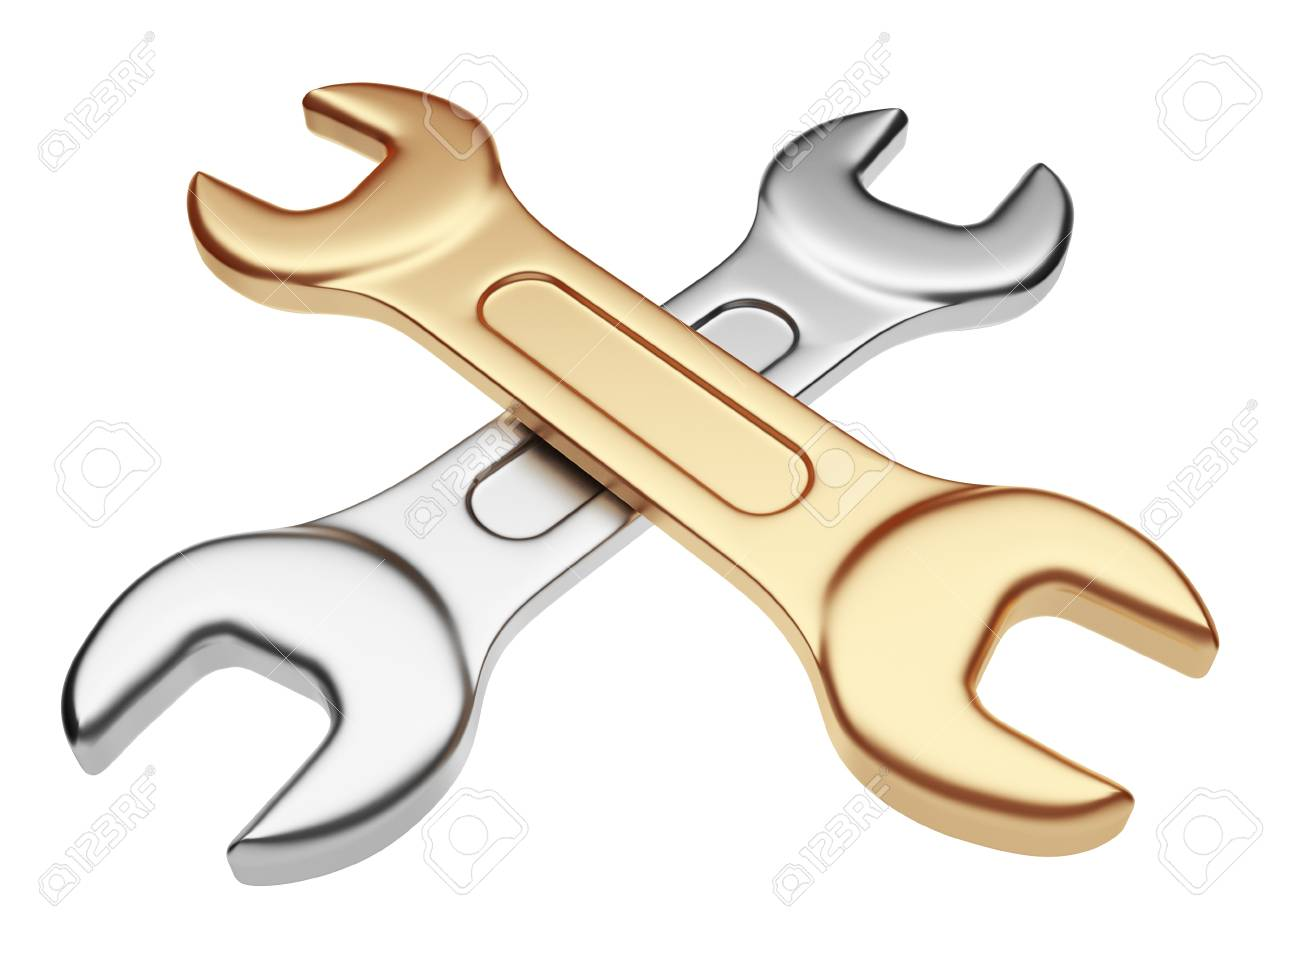 Wrench tool  3D illustration isolated Stock Photo - 12780514